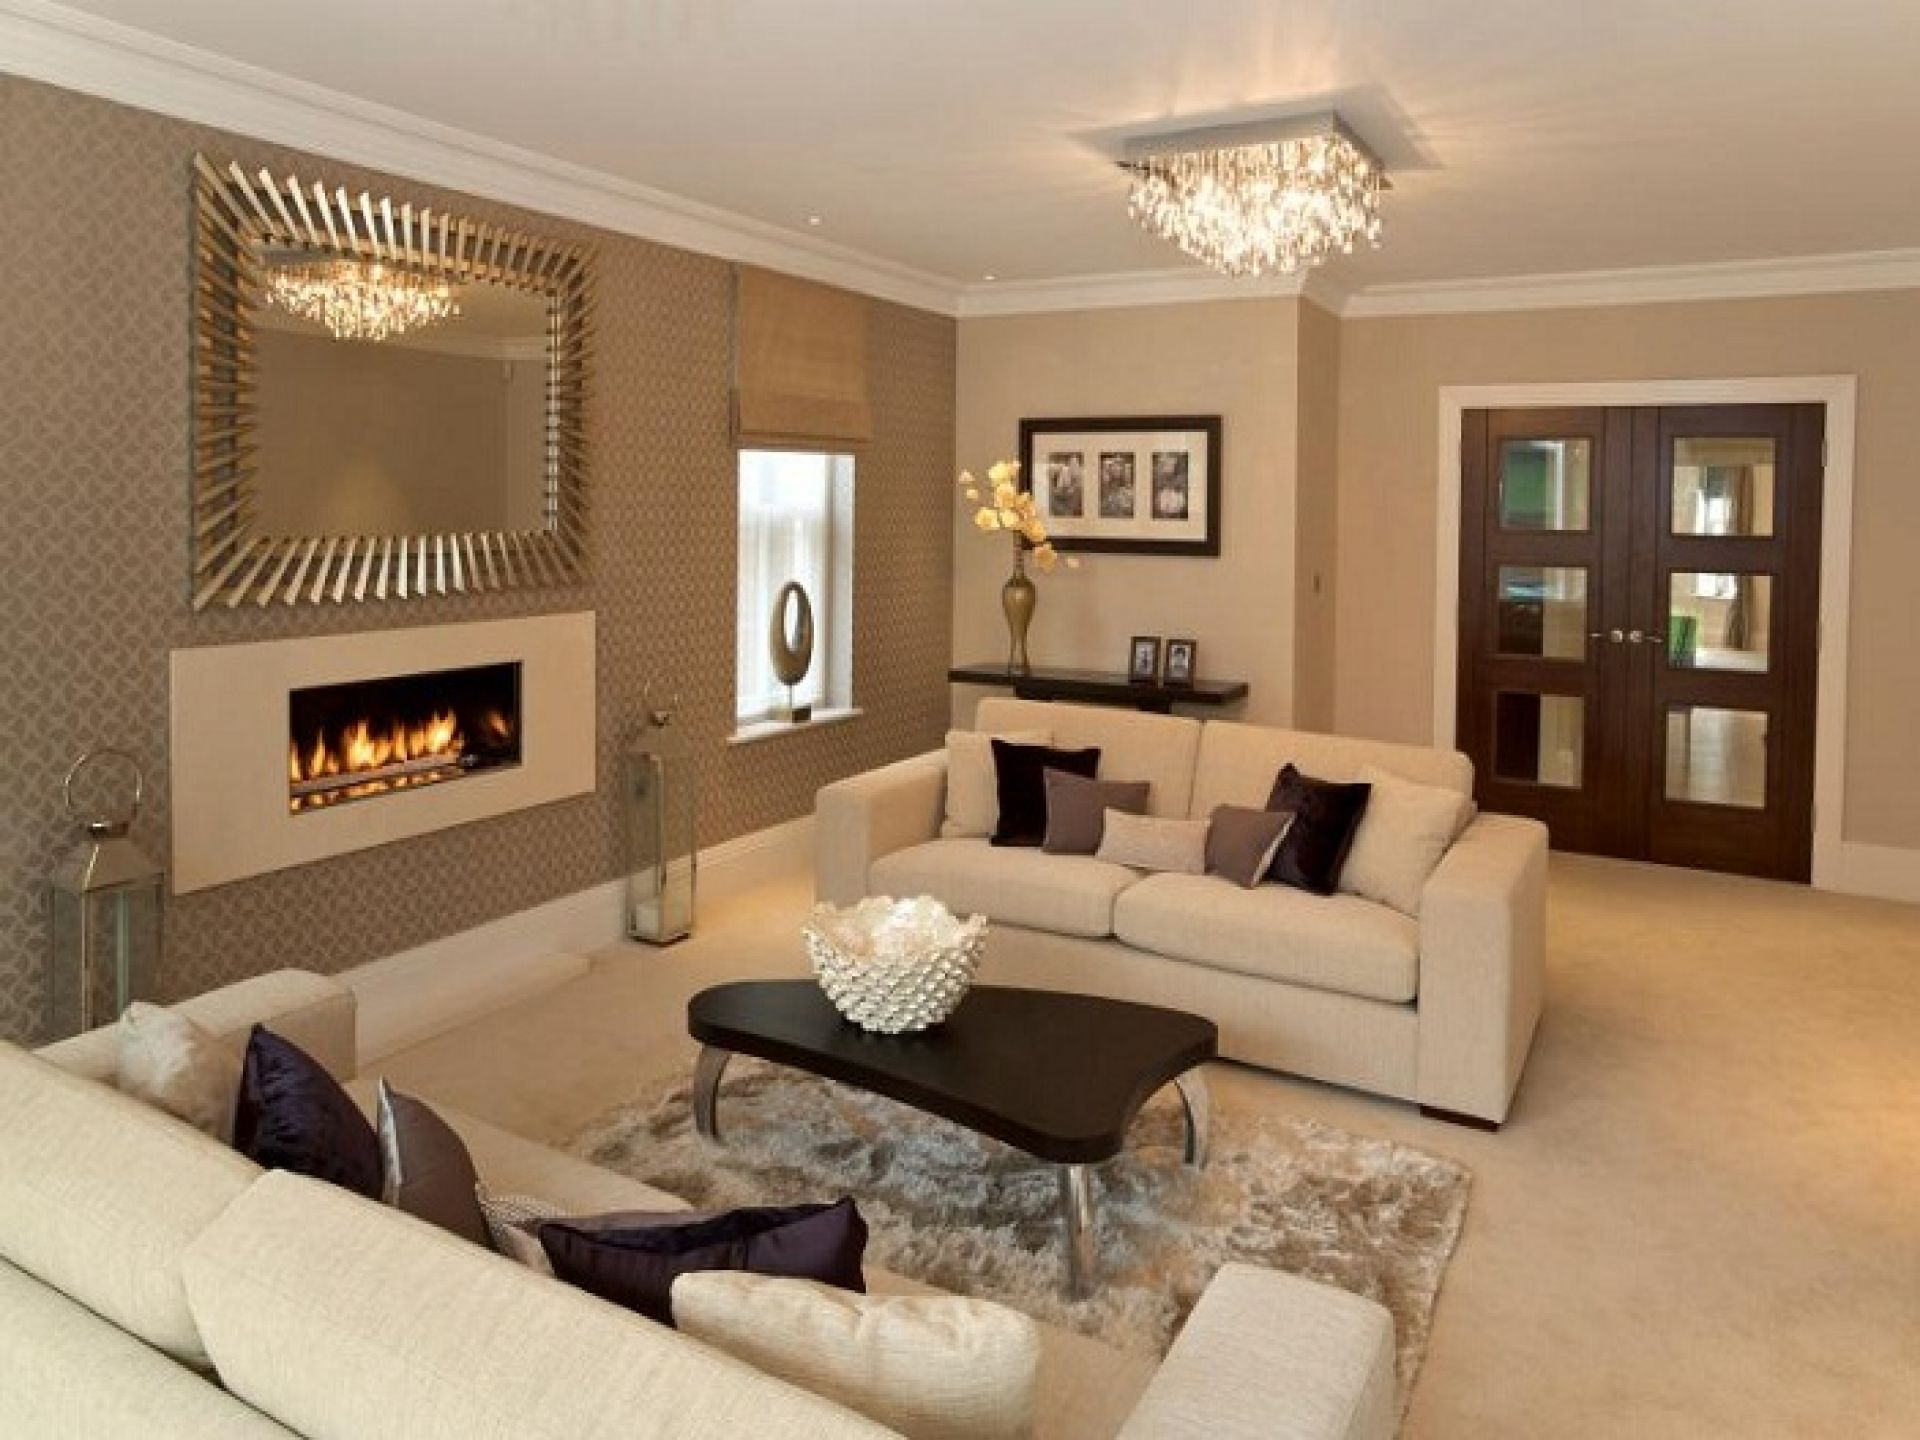 15 EXCLUSIVE LIVING ROOM IDEAS FOR THE PERFECT HOME Glass Lights